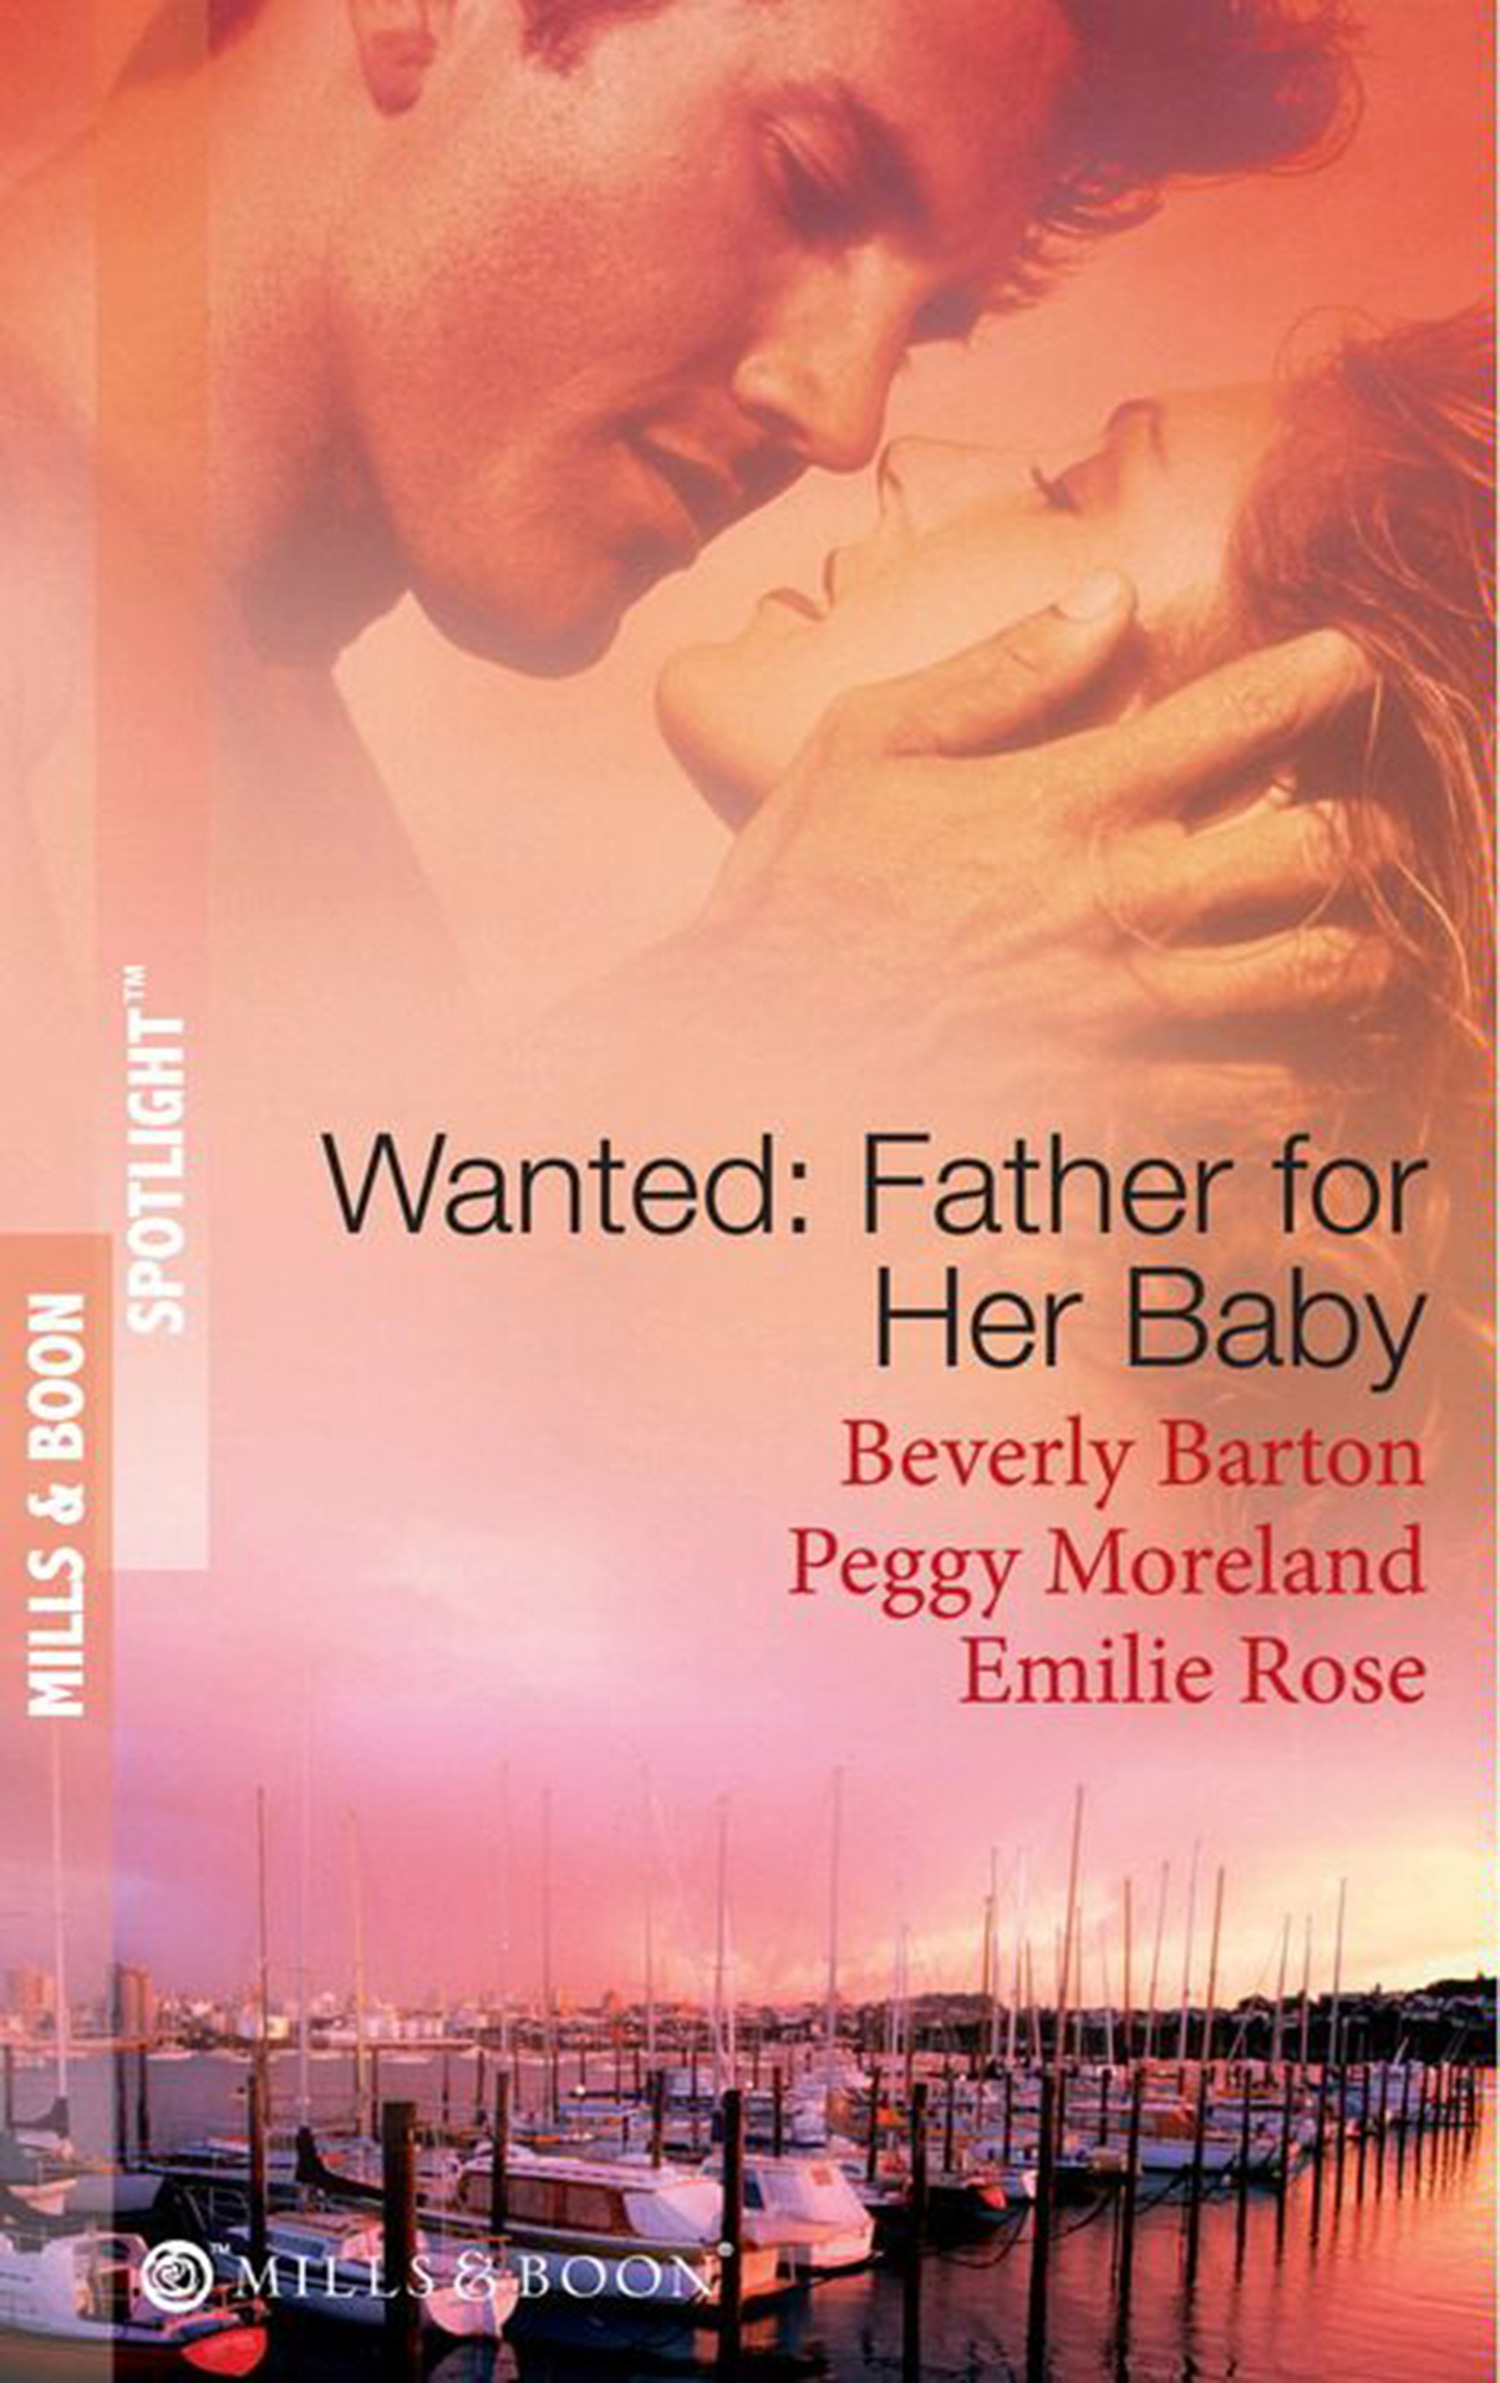 Wanted: Father For Her Baby